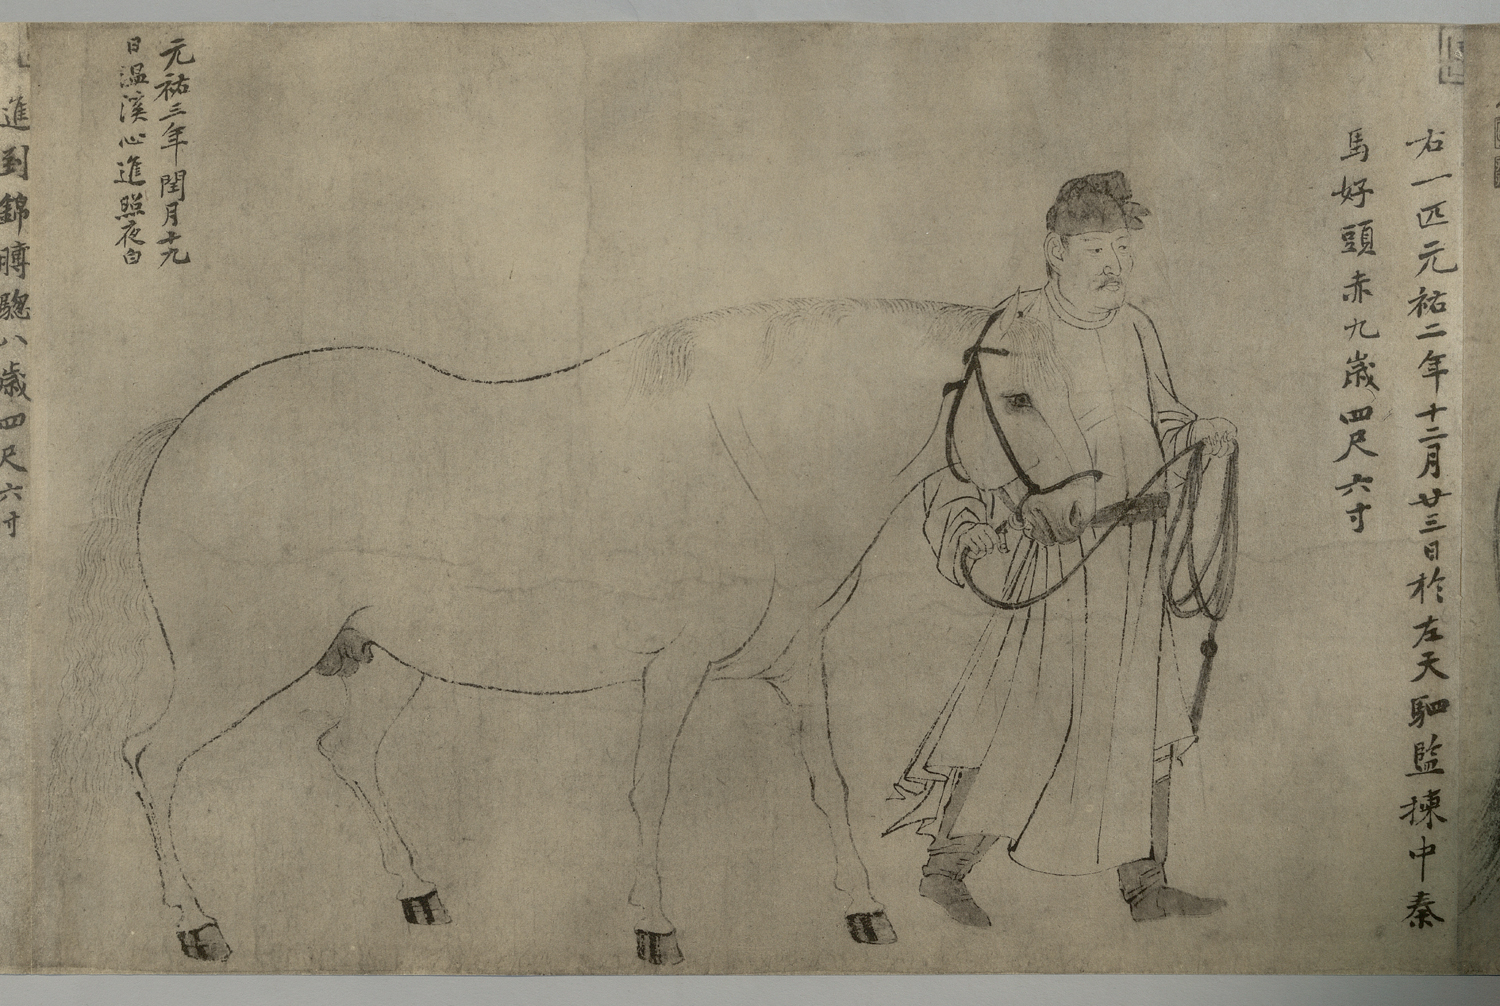 Detail of third groom and horse from Wuma Tu李公麟五馬圖, Li Gonglin, 1927.